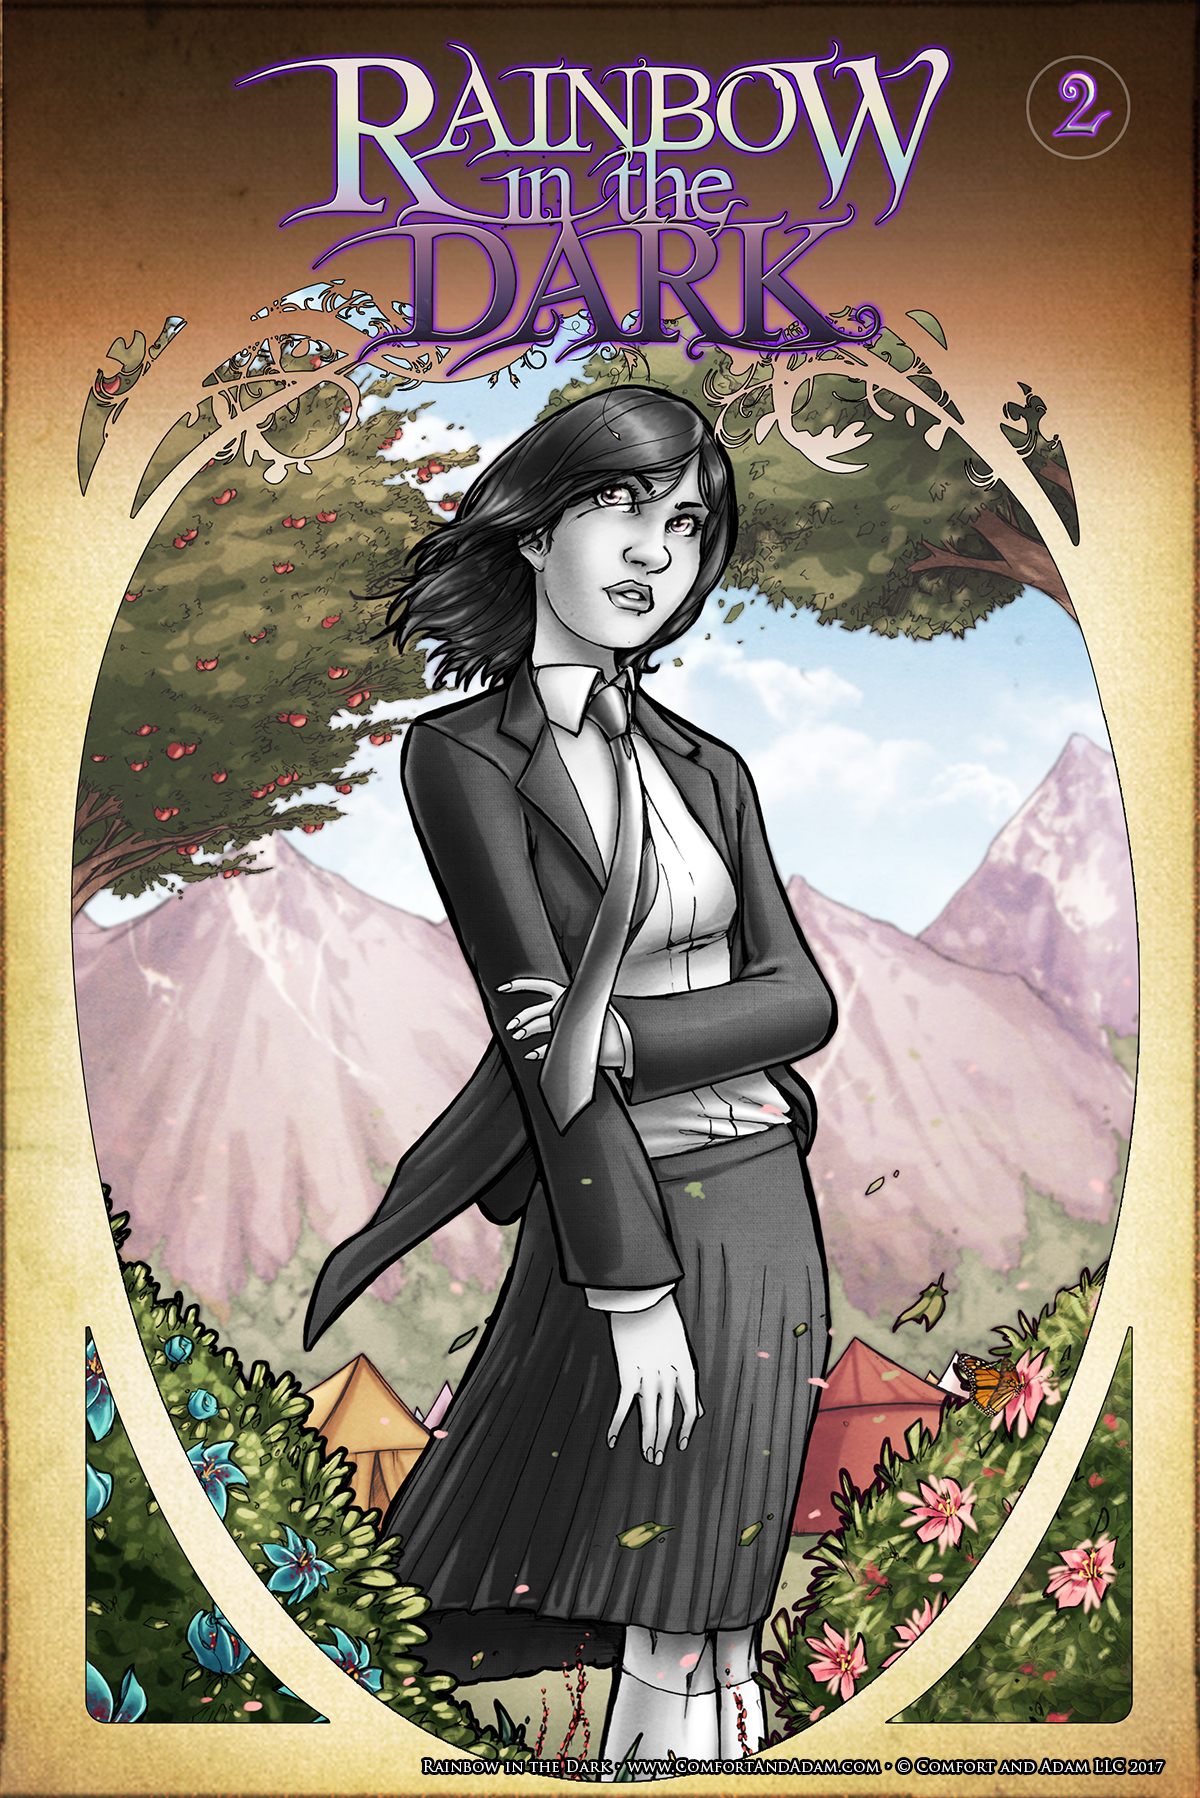 Rainbow in the Dark #2: Discover Cover